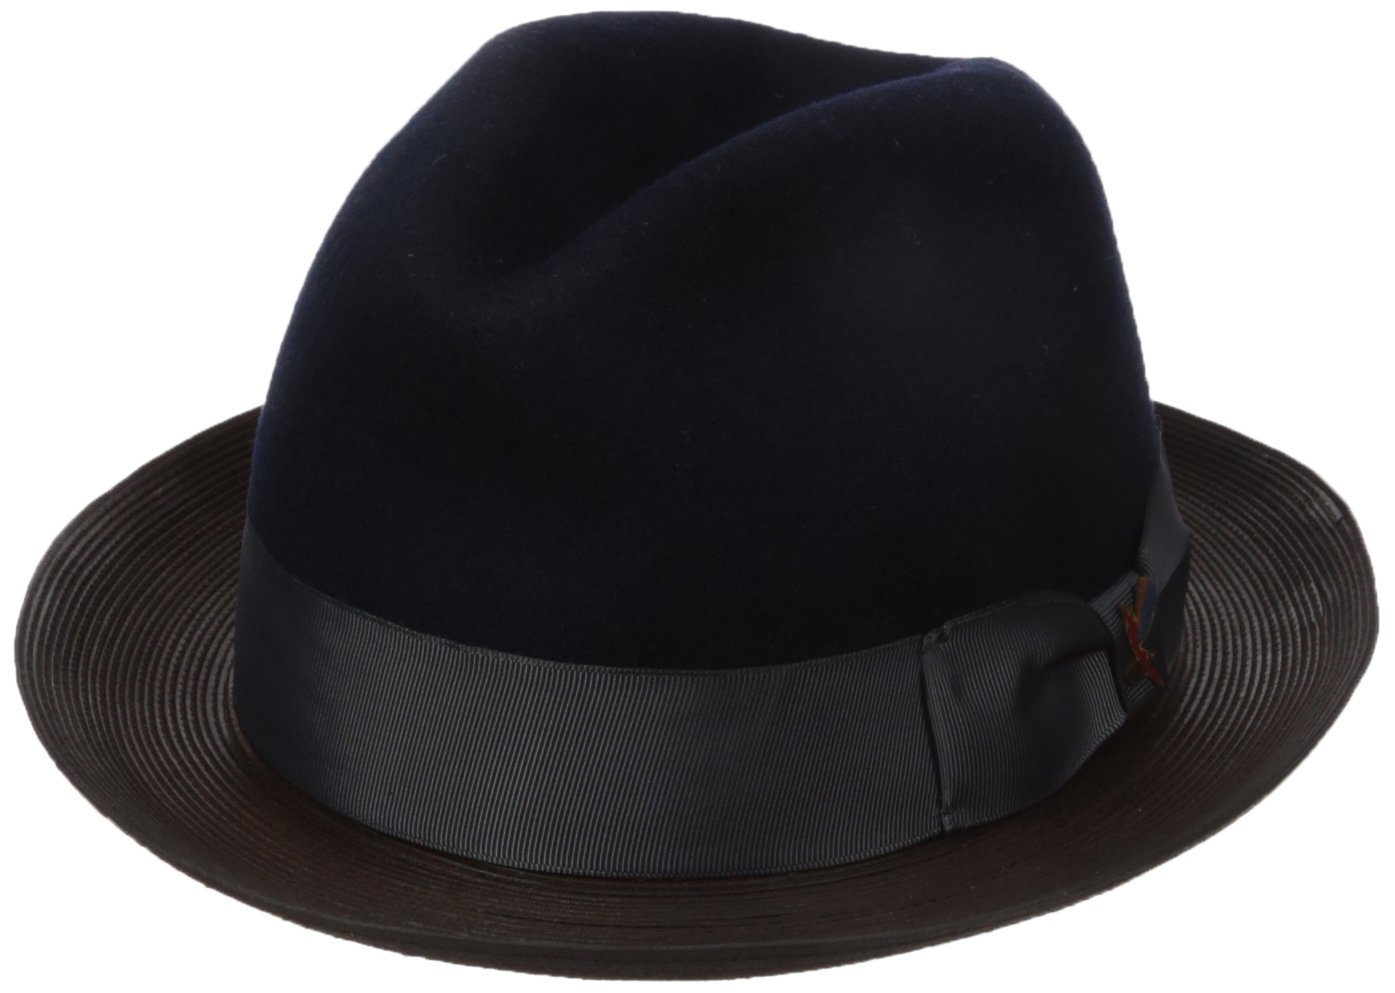 Carlos Santana Men's Wool Pinch Hat With Leather, Navy, Medium